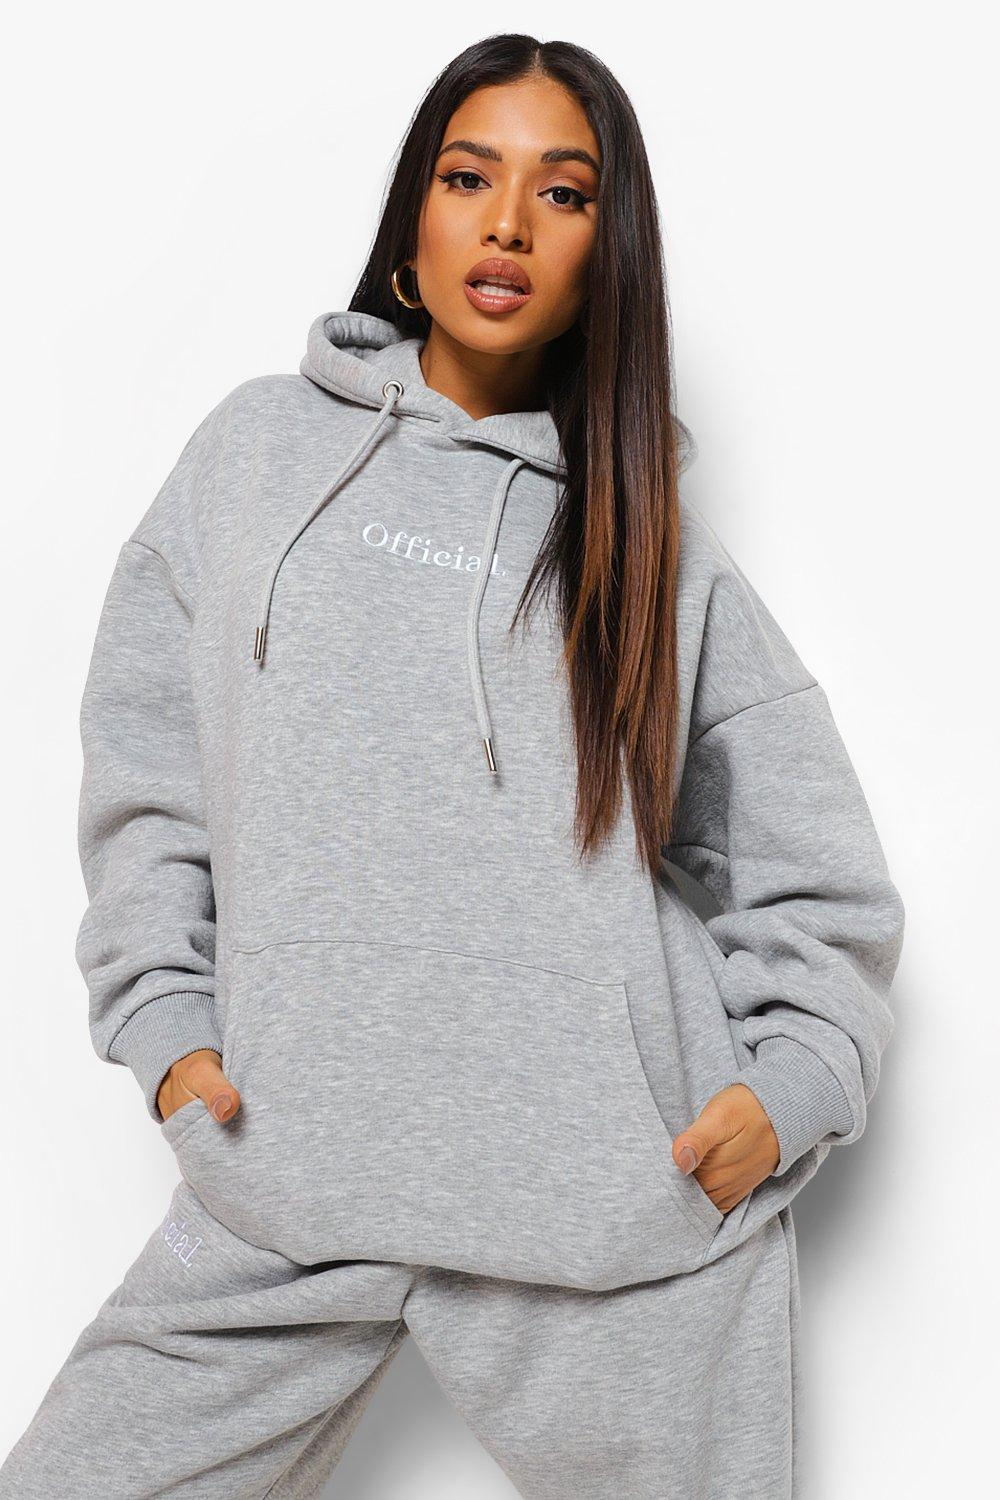 Boohoo Petite Official Oversized Embroidered Hoodie, Grey Marl